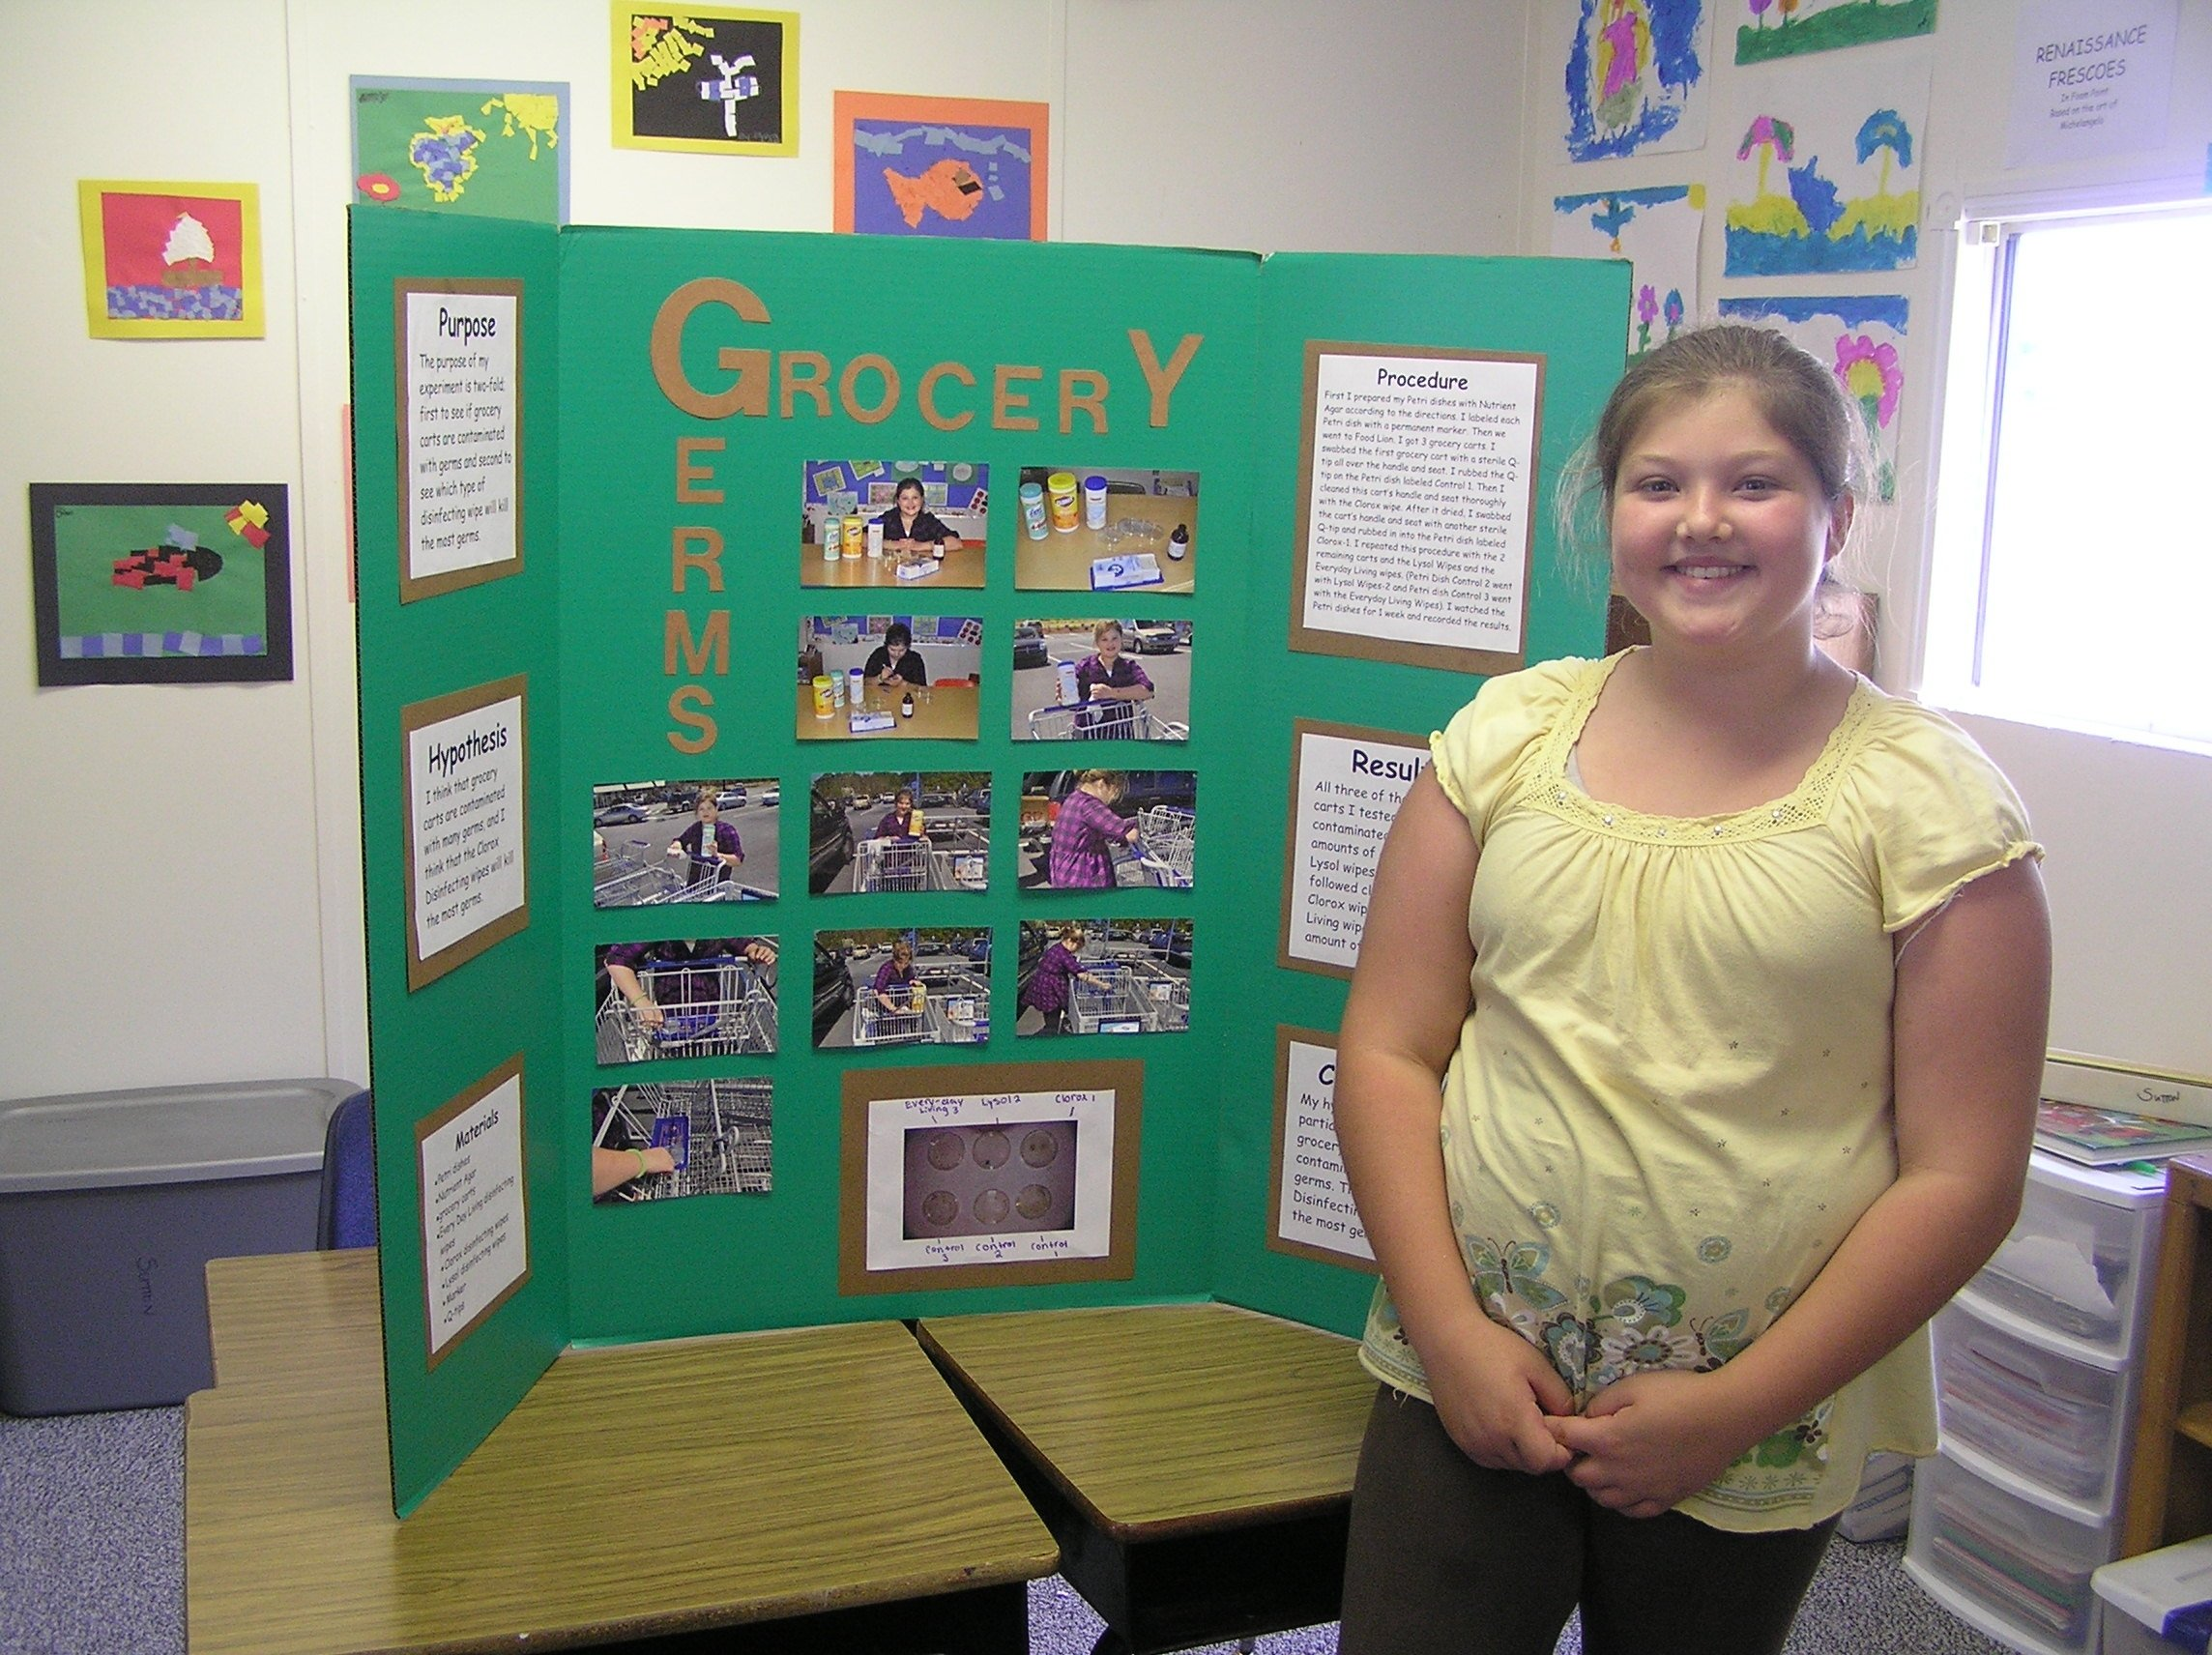 10 Elegant Ideas For 5Th Grade Science Project grocery germs whats on that cart handle science fair 10 2020